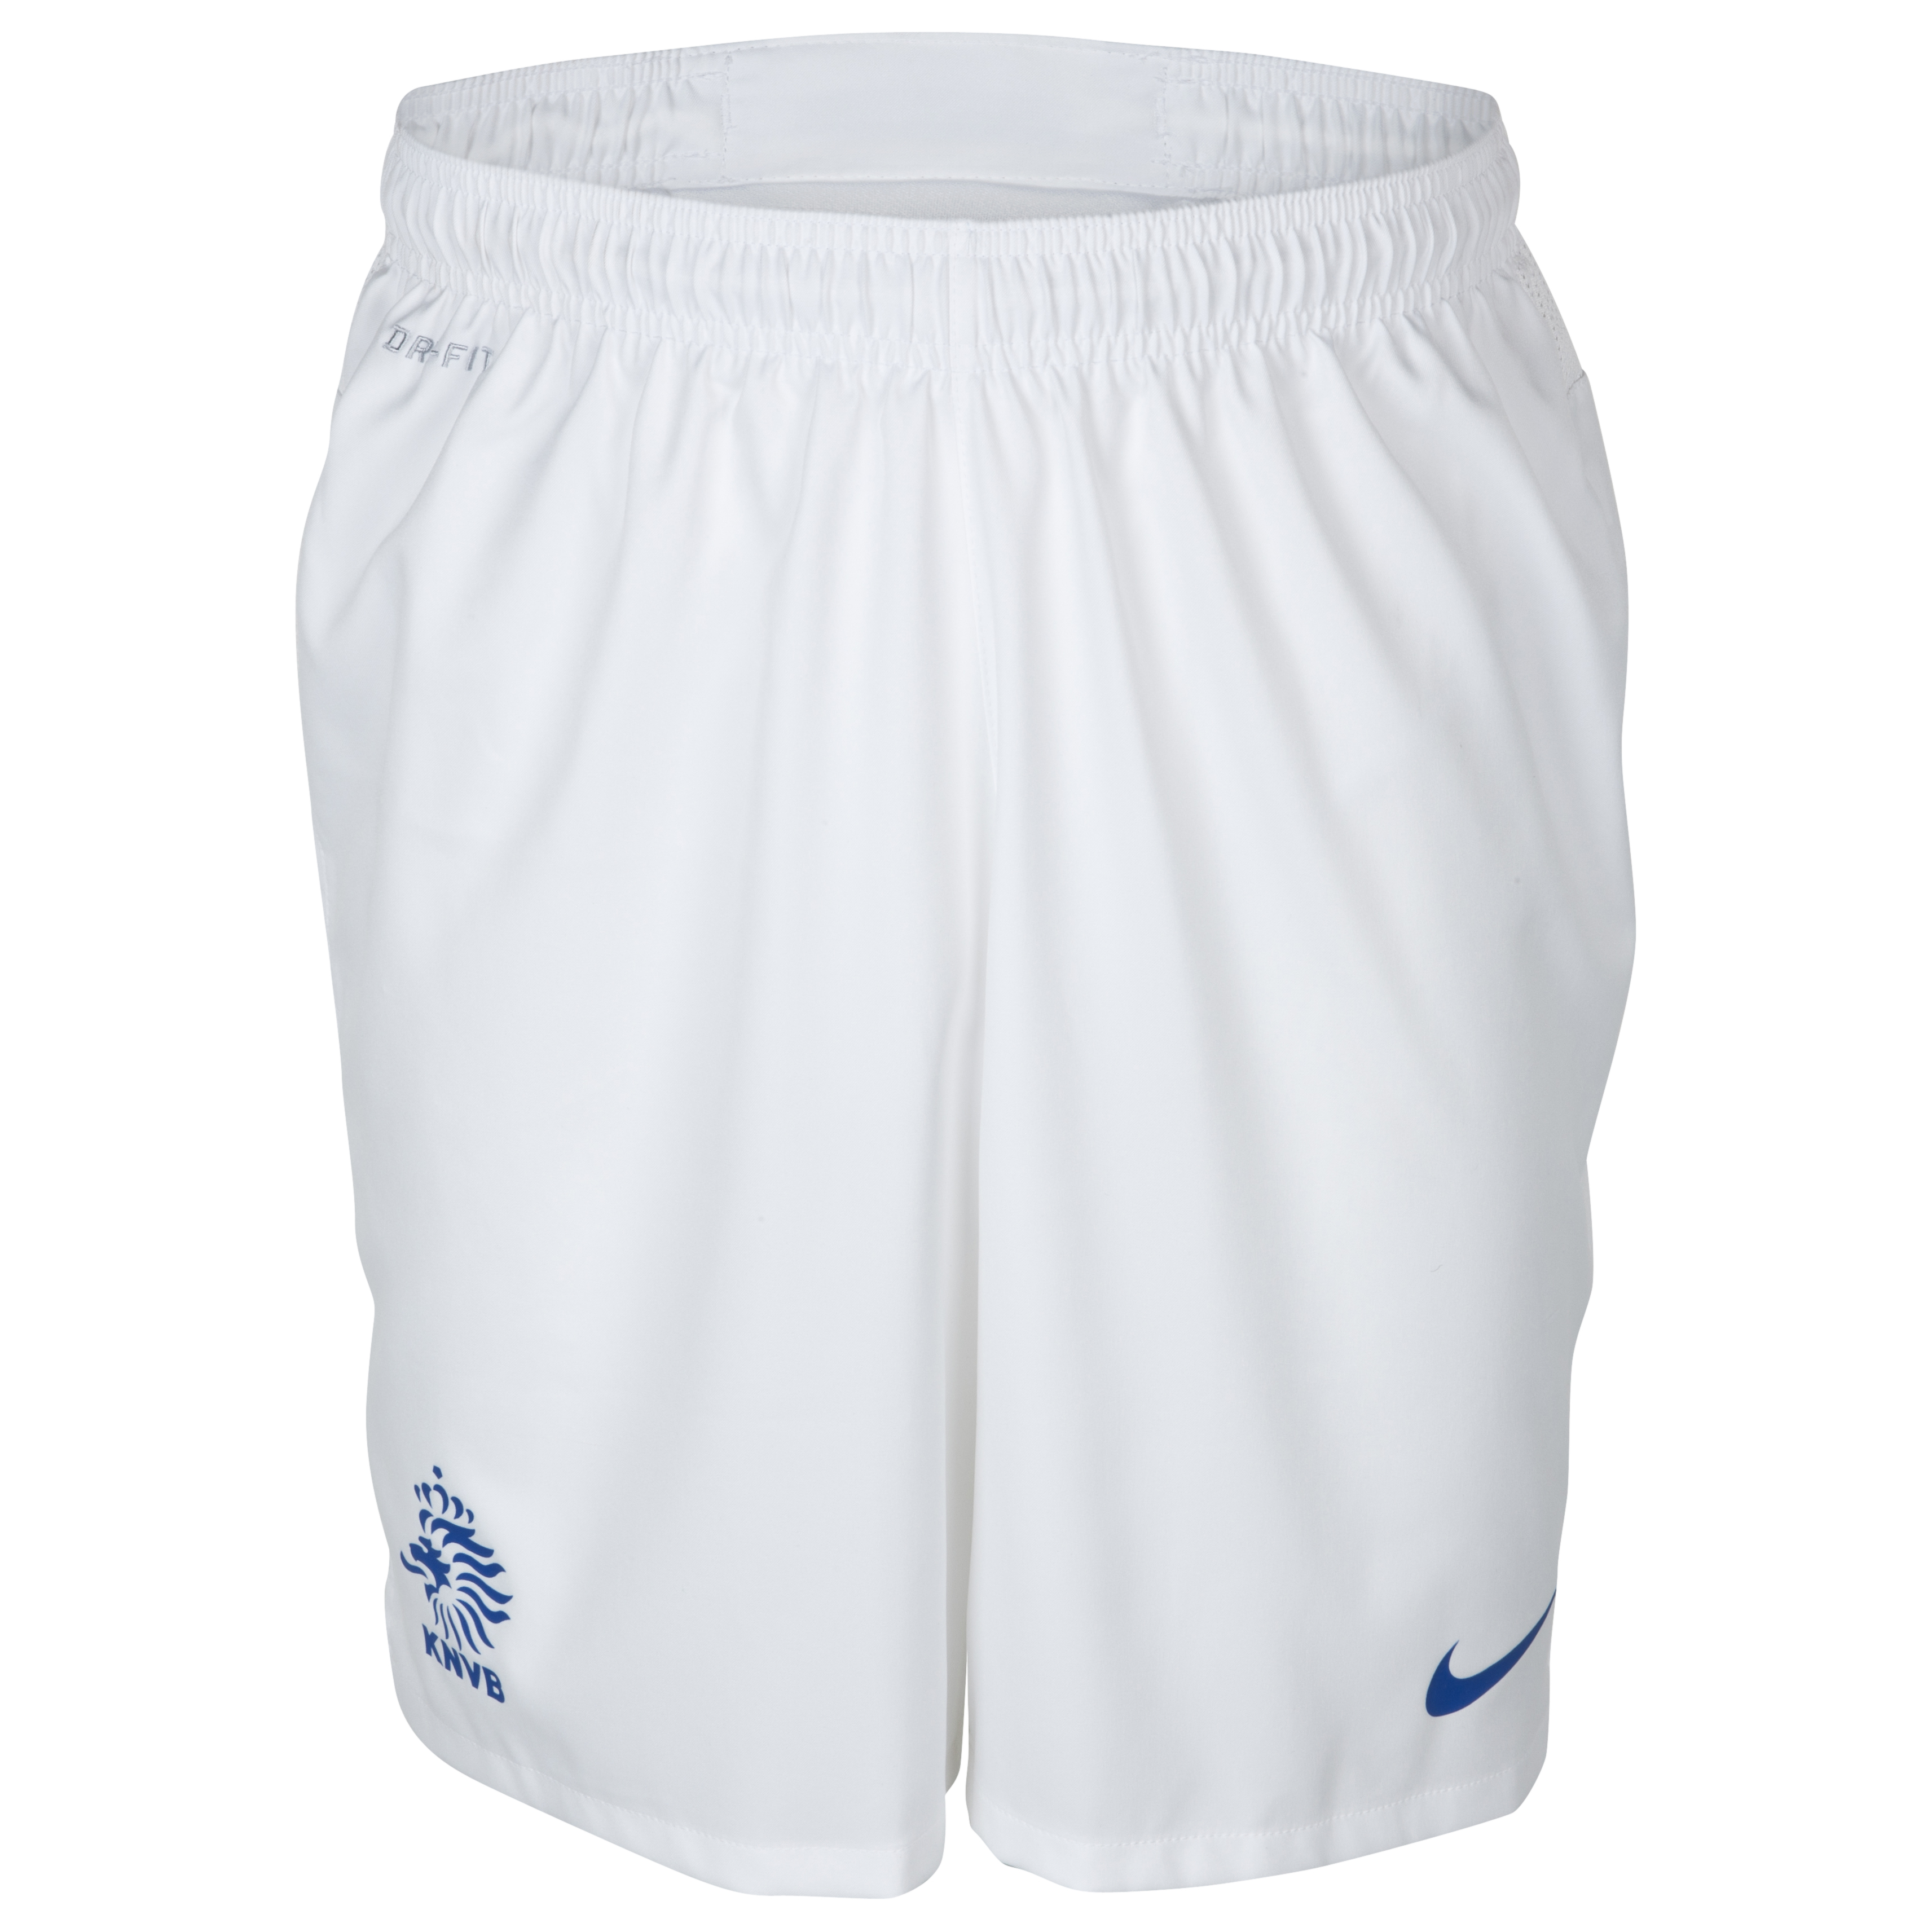 Netherlands Away Short 2013/14 - Youths